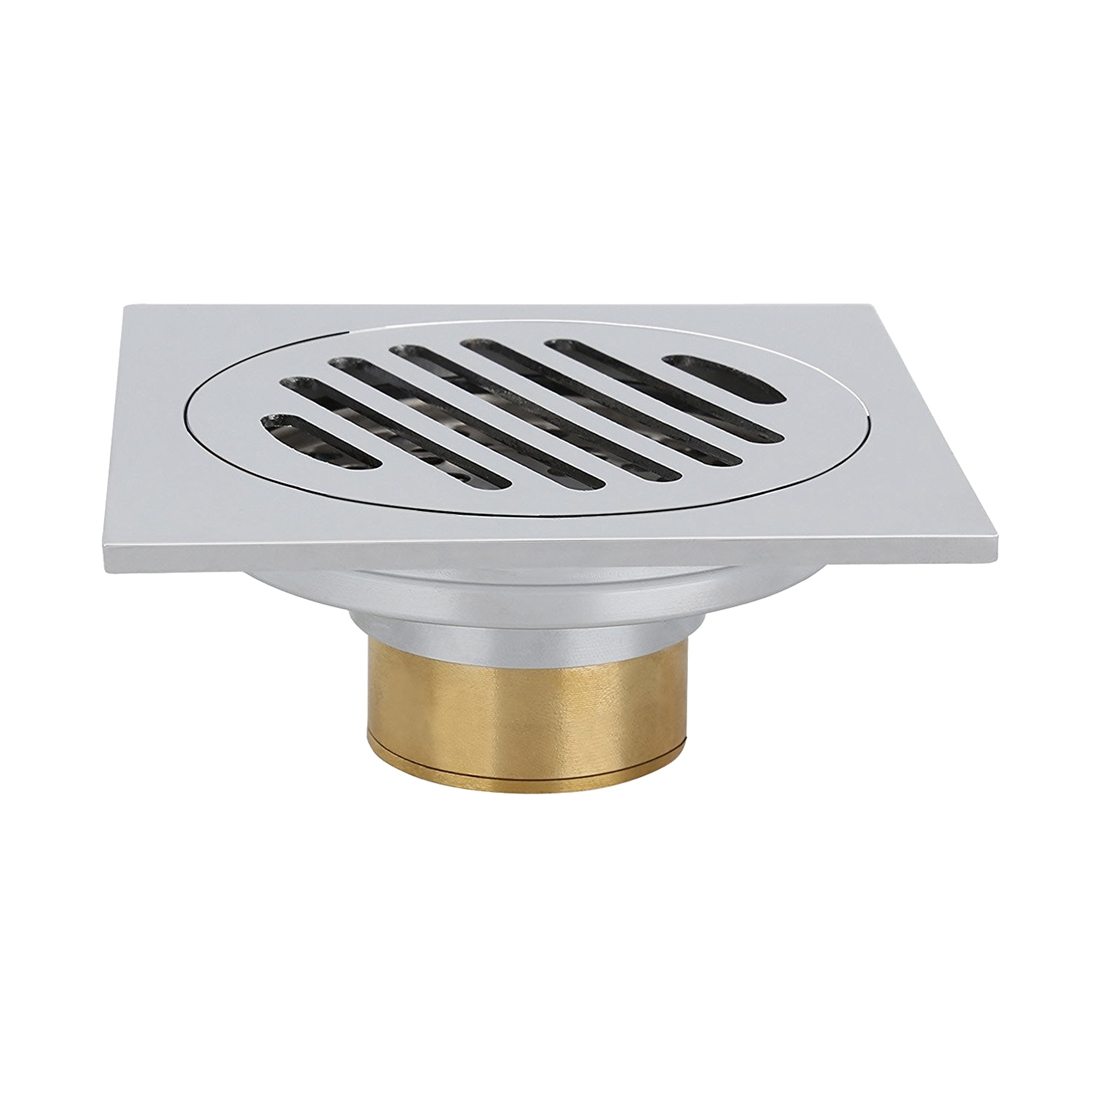 Stainless steel floor drainage shower trap drain